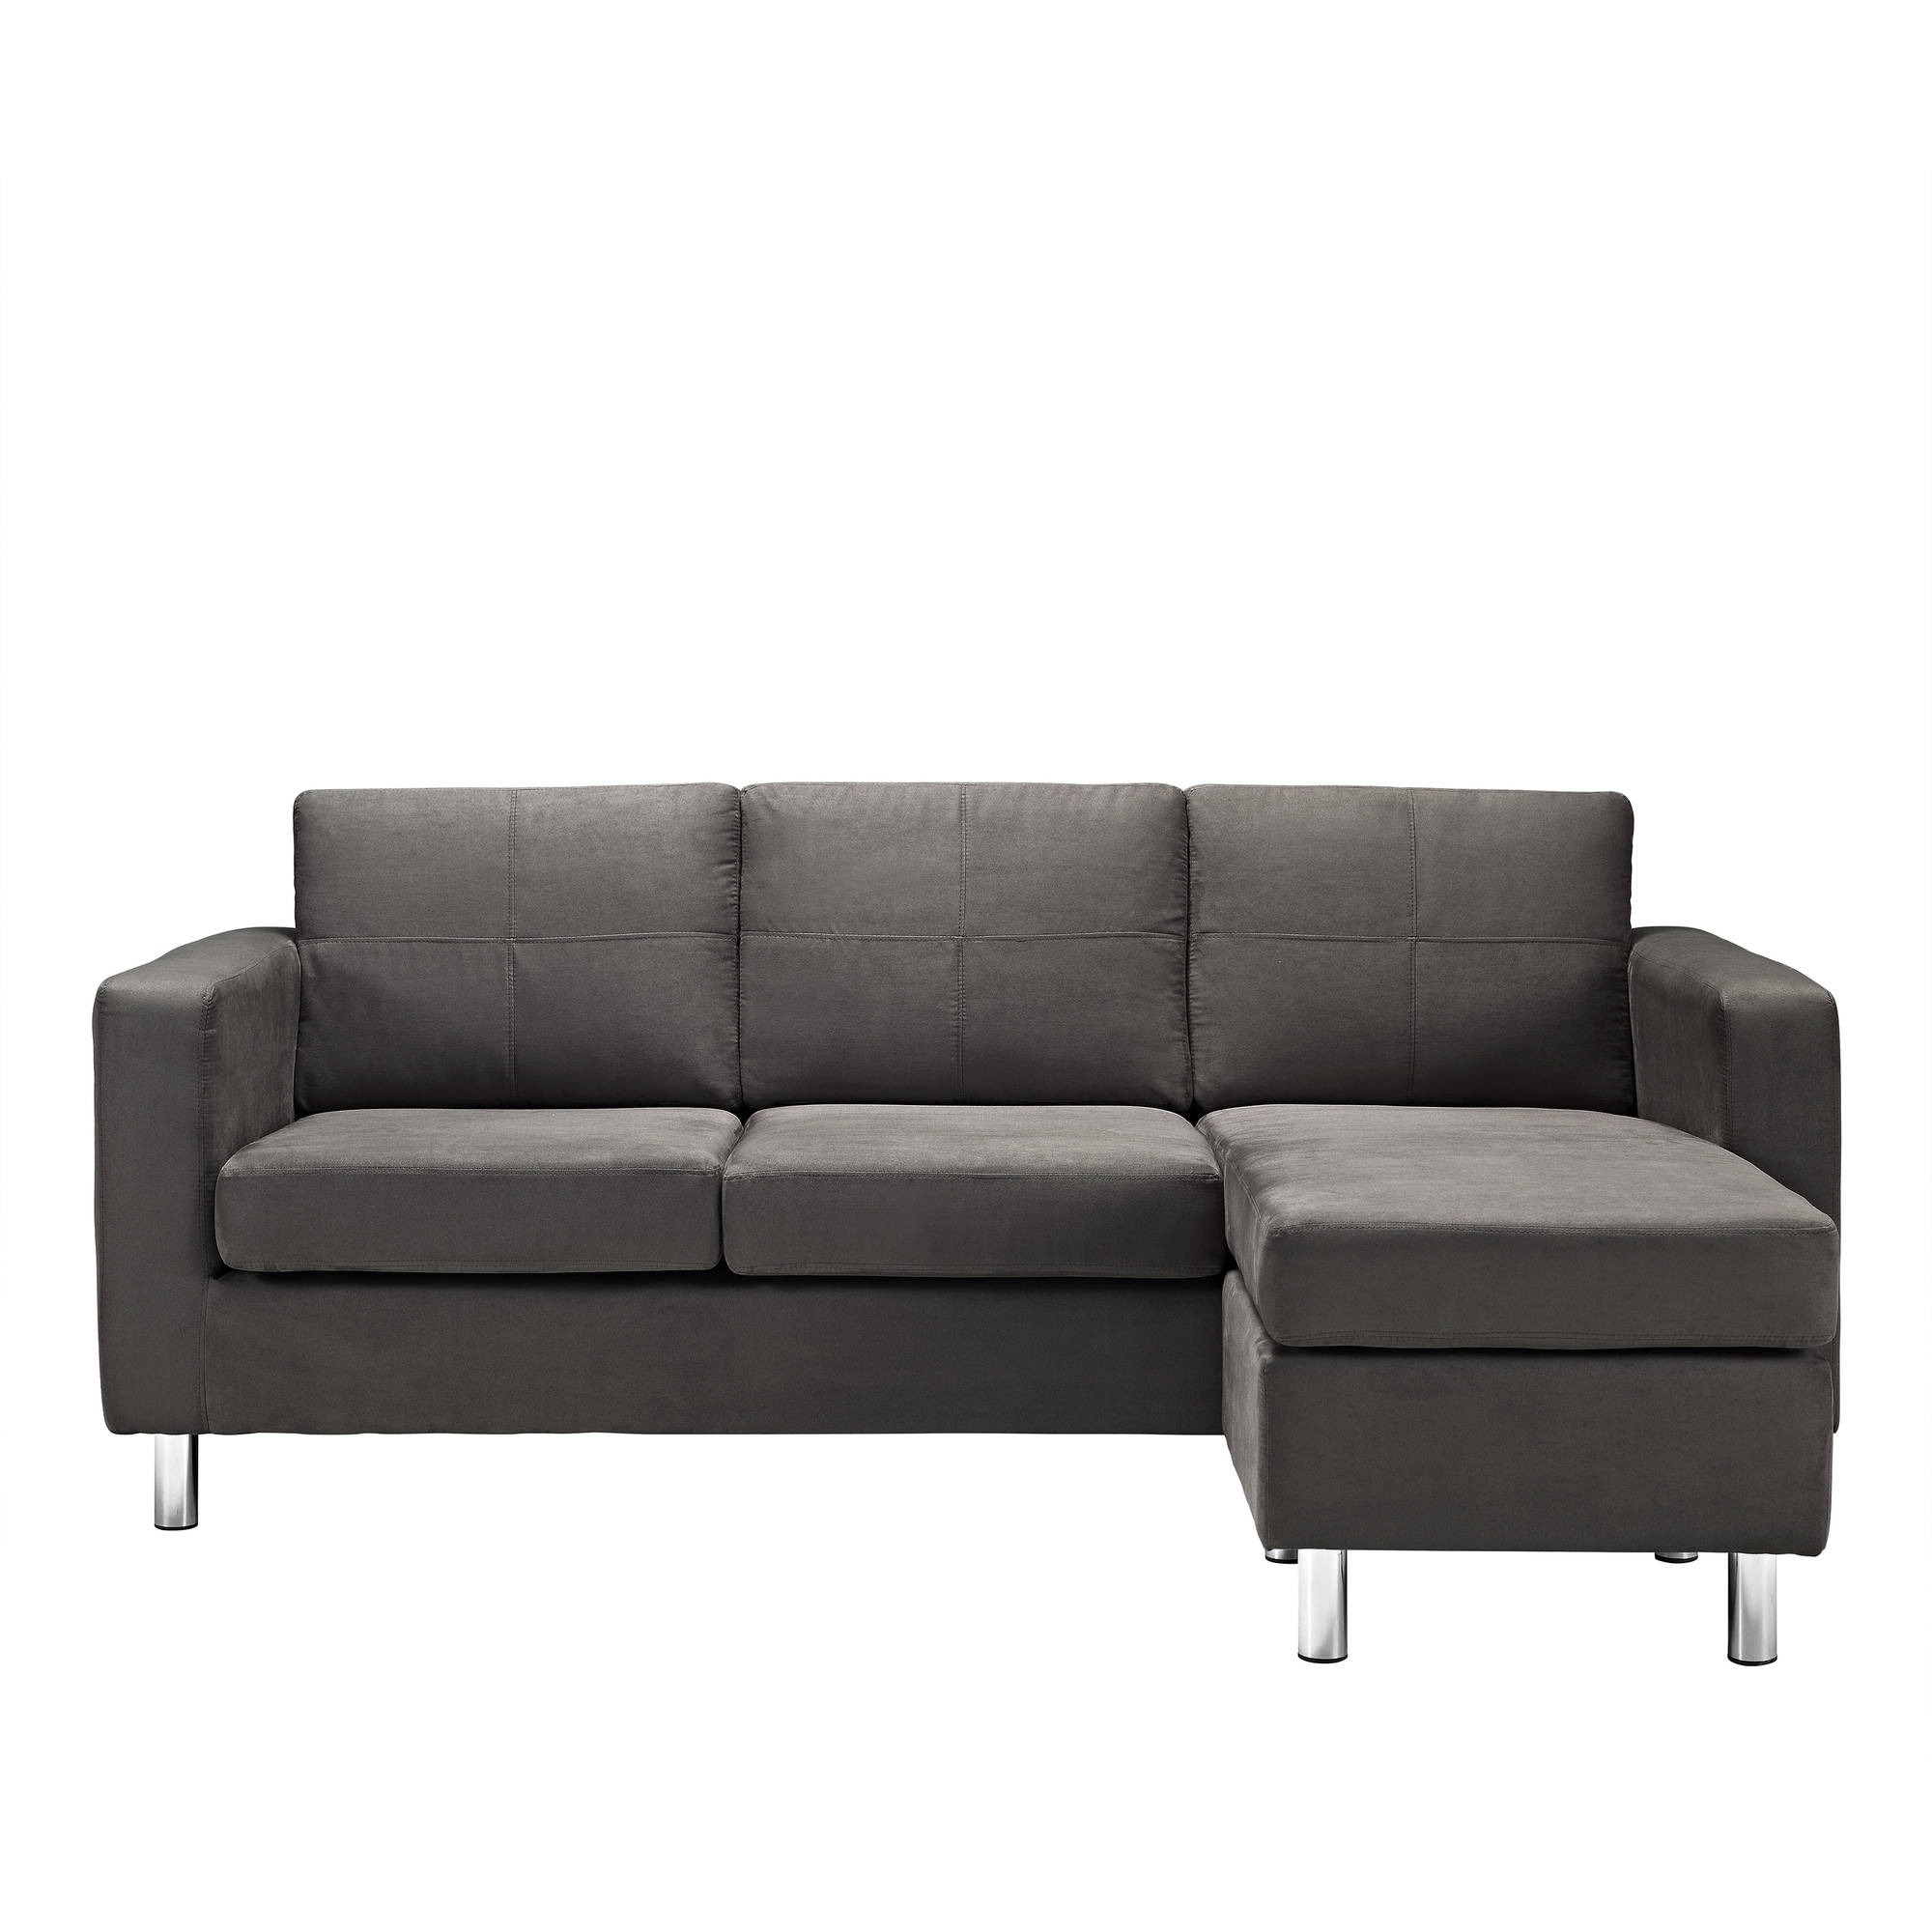 Choice Pertaining To Small Sectional Sofas (View 2 of 10)